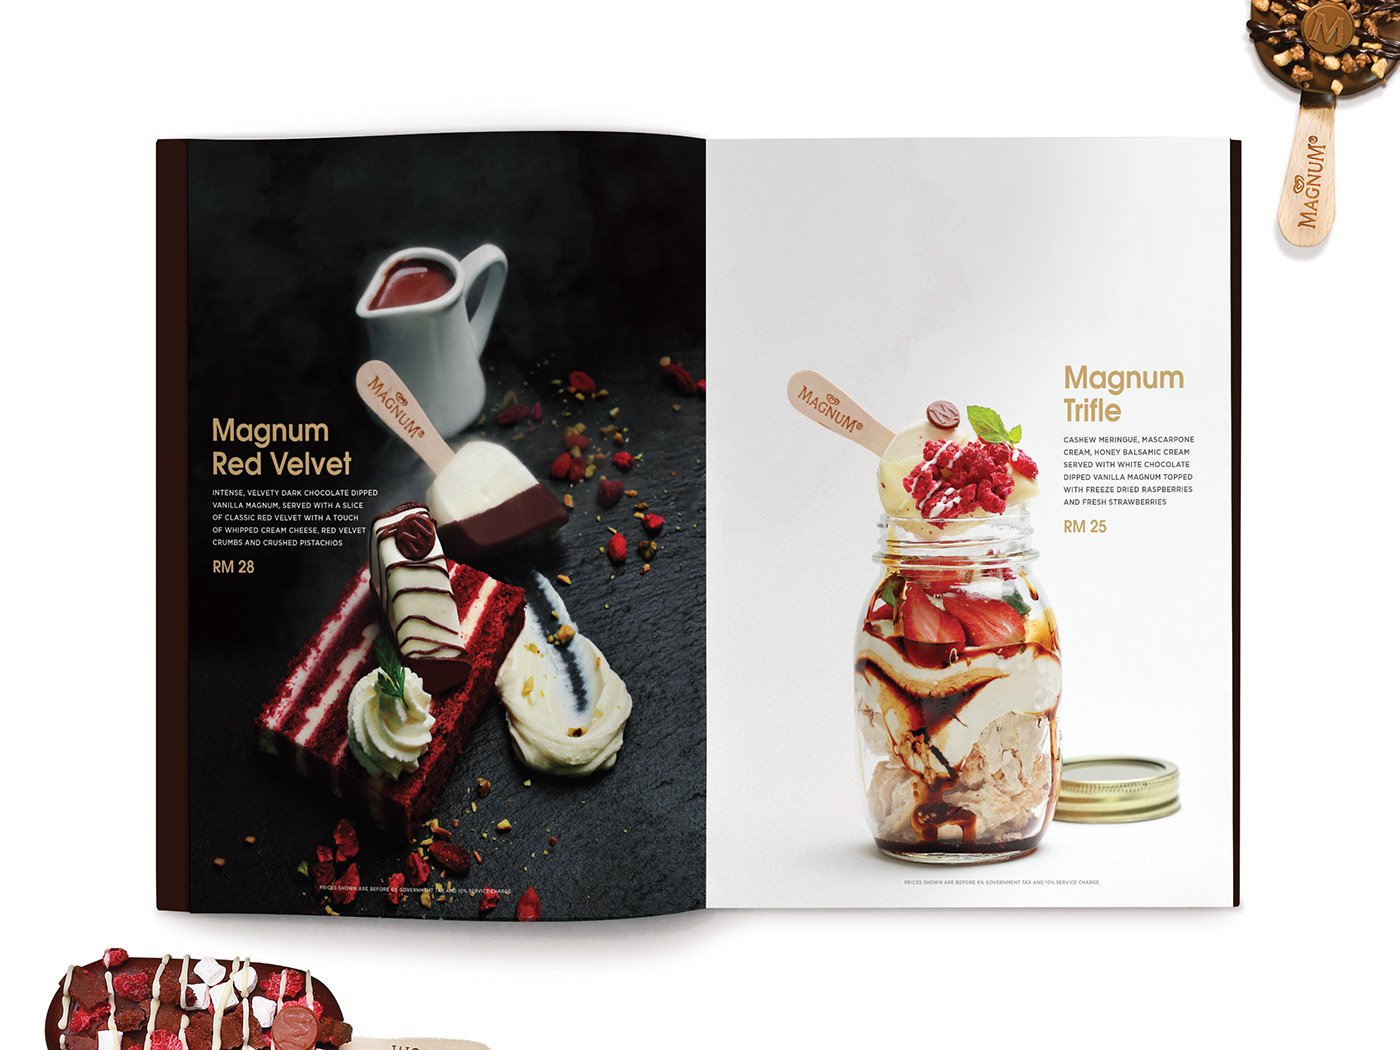 Magnum Pleasure Store menu design inner page layout design with beautiful food styling and photography of Magnum red velvet and trifle.